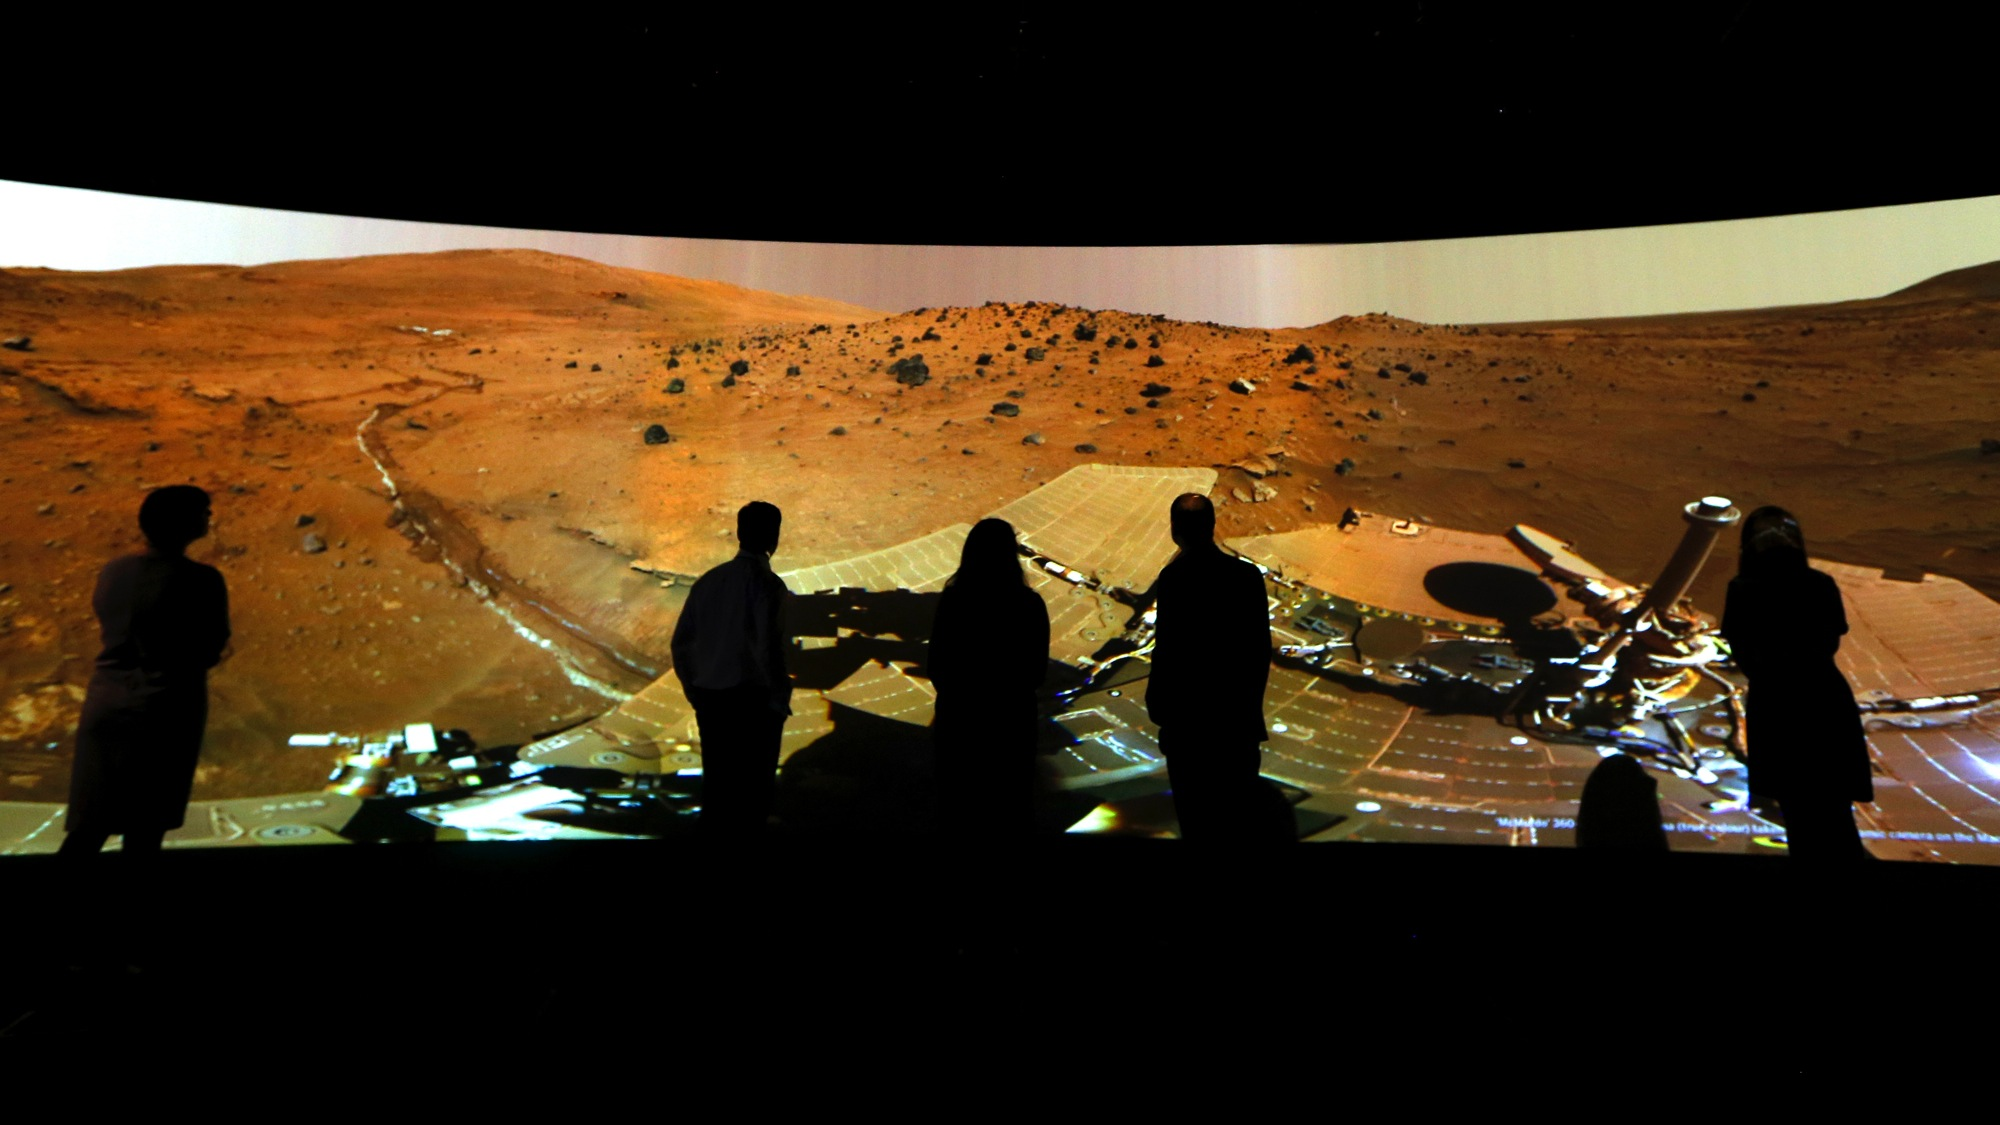 """FILE - In this Wednesday, June 5, 2013 file photo, people look at the """"Mars Window,"""" a projection of images taken by NASA's Mars Curiosity Rover at the Visions of the Universe exhibition at The National Maritime Museum in Greenwich, London. (AP Photo/Kirsty Wigglesworth)"""